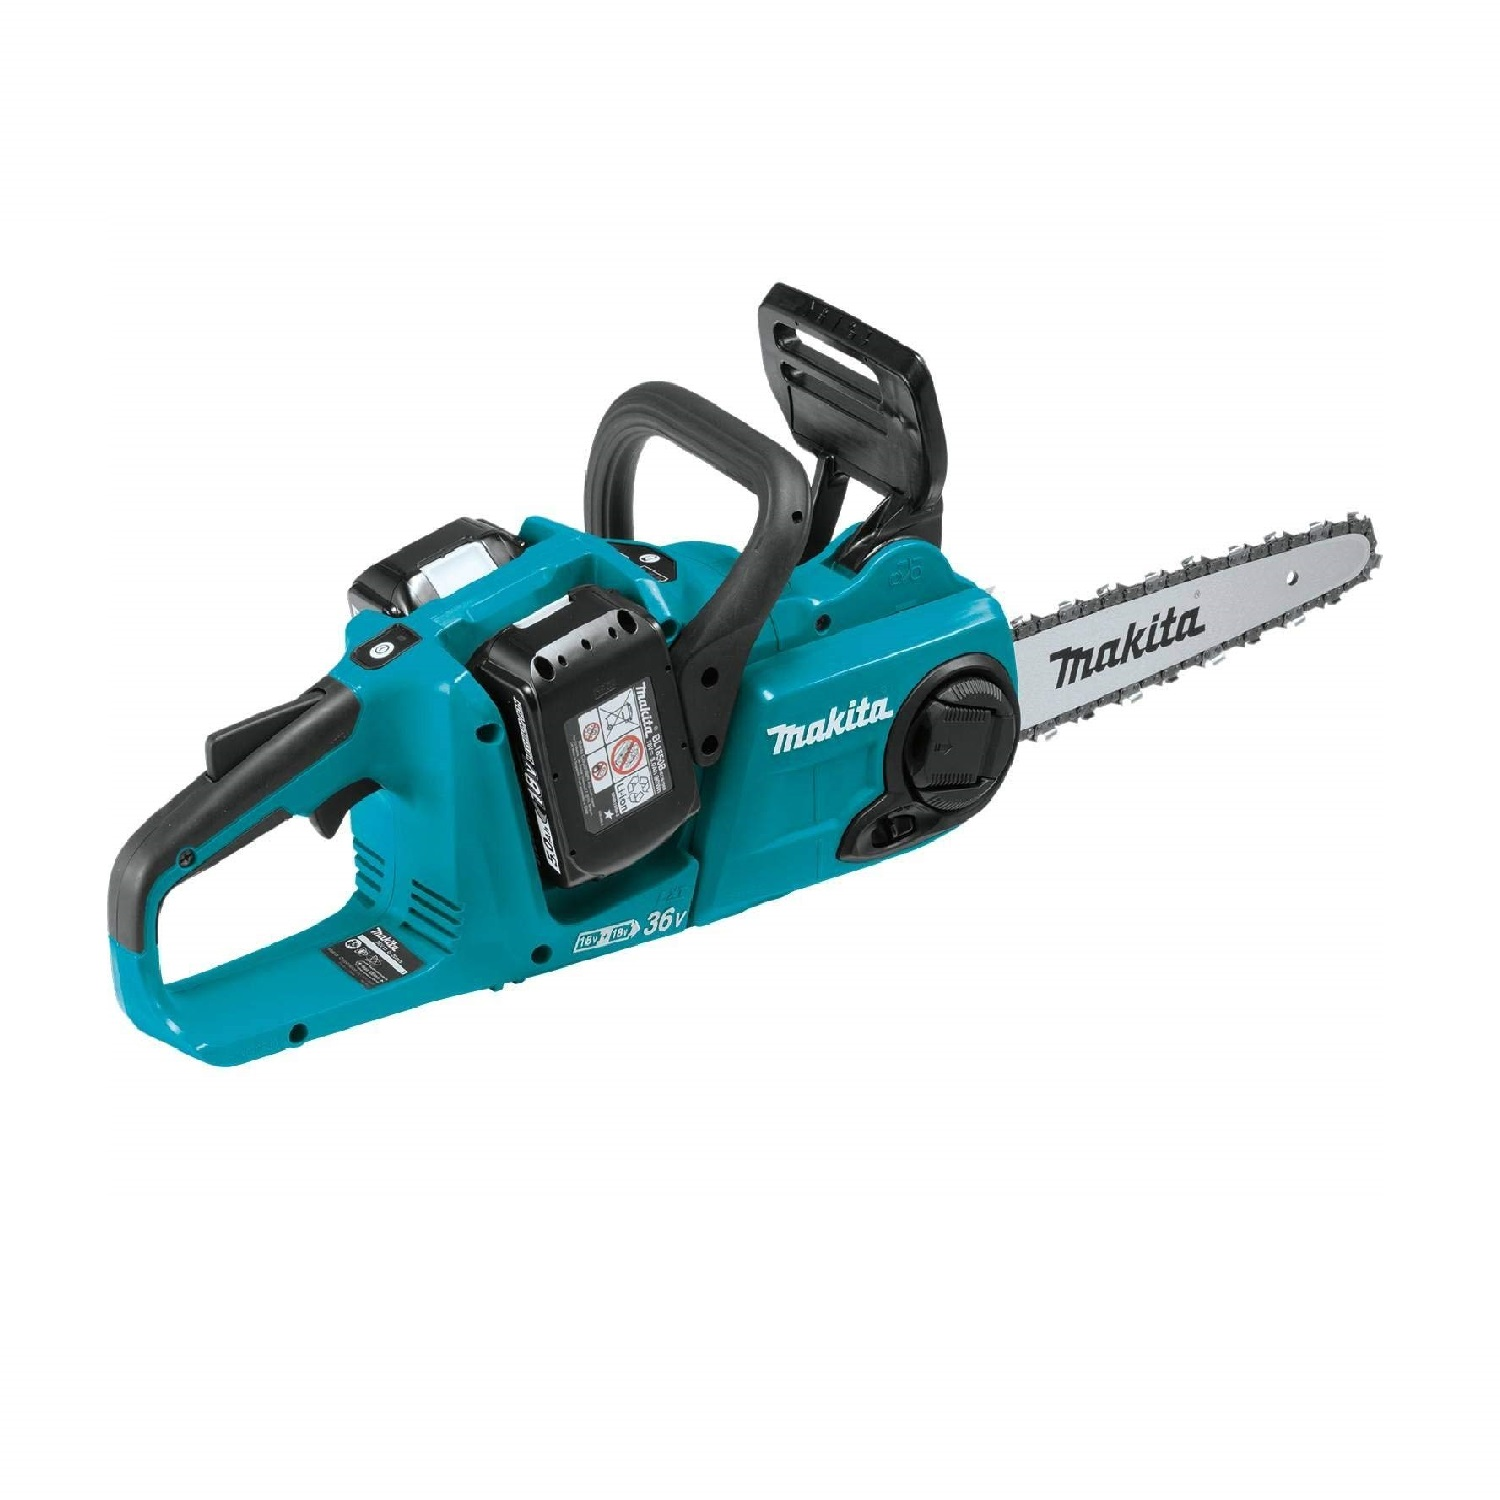 Picture of a turquoise cutting saw